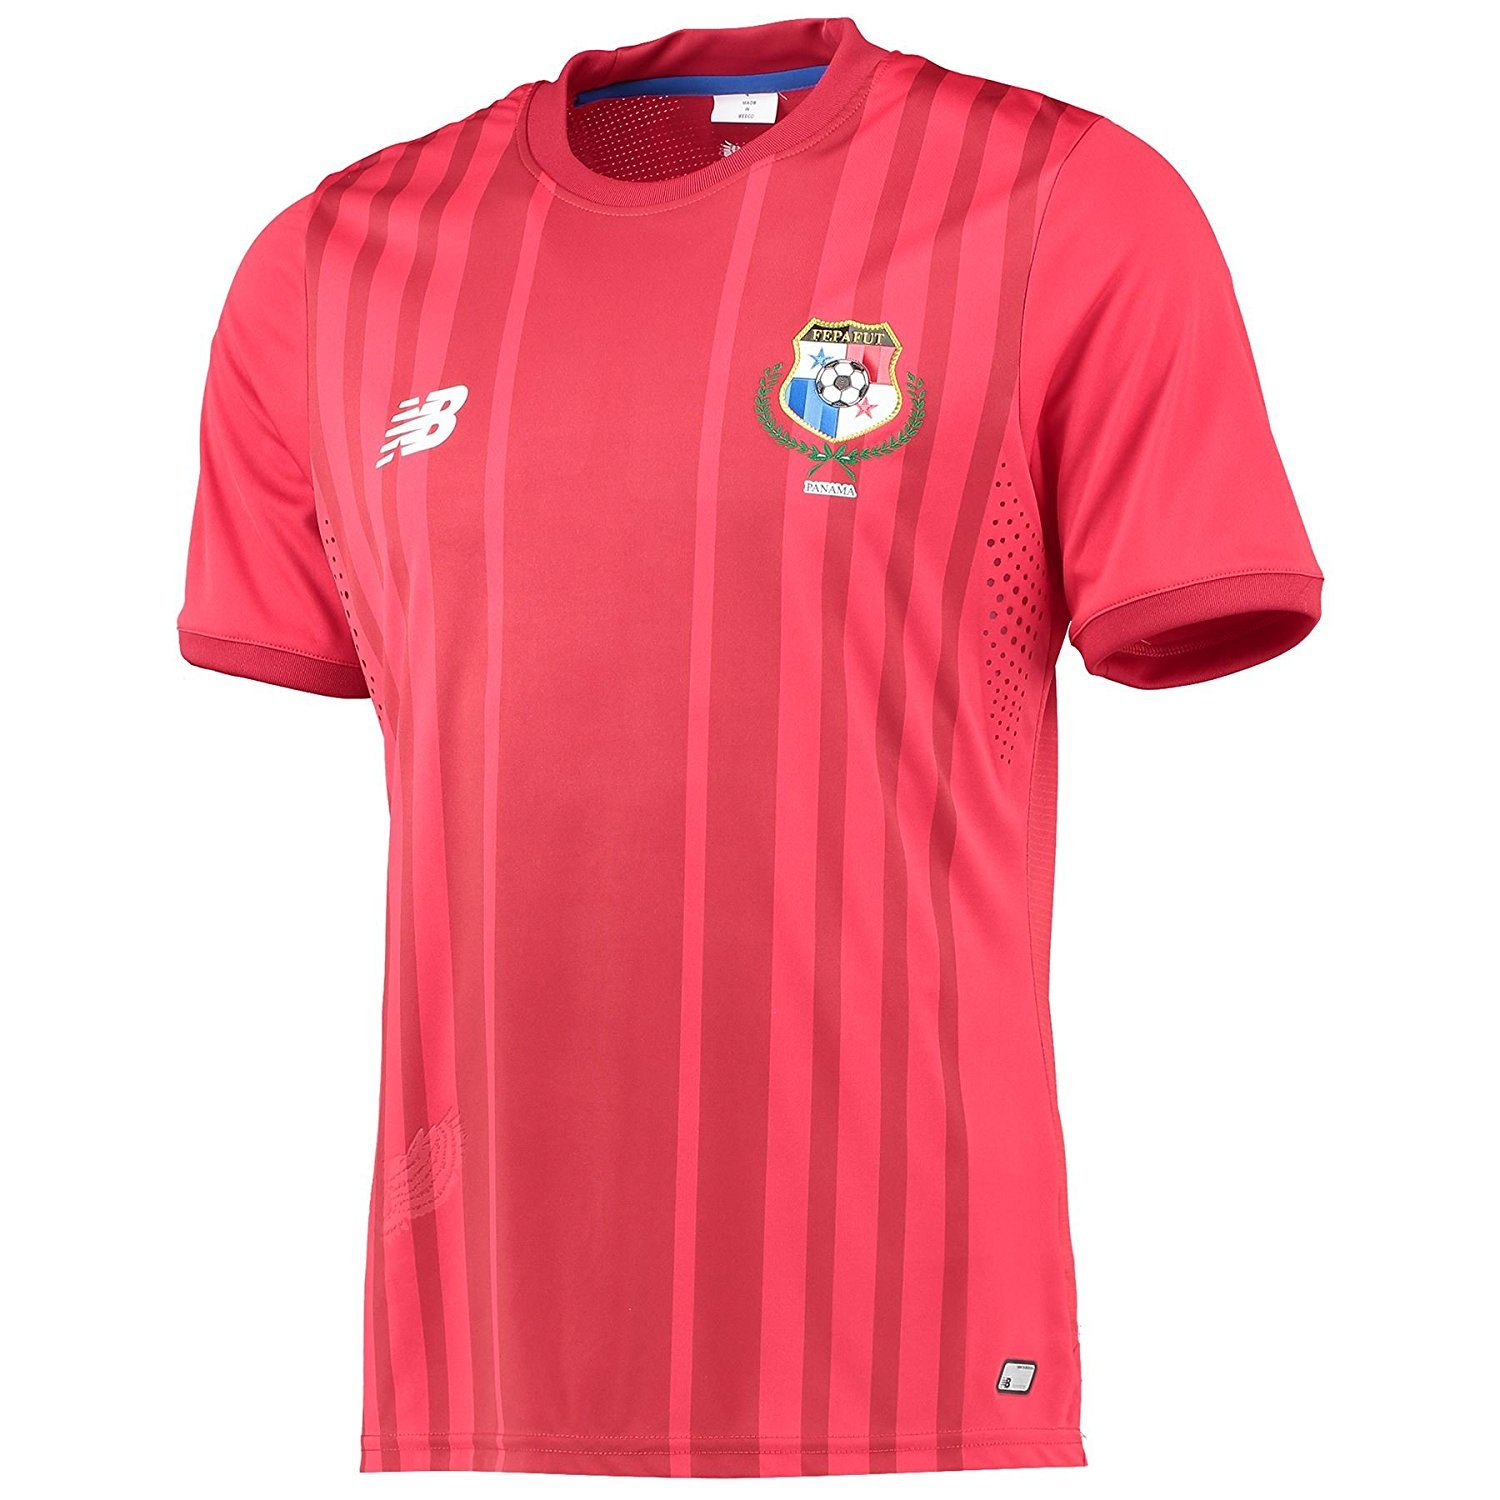 buy online 9c90c 113f5 Amazon.com: New Balance Panama Home Jersey (Red): Sports ...